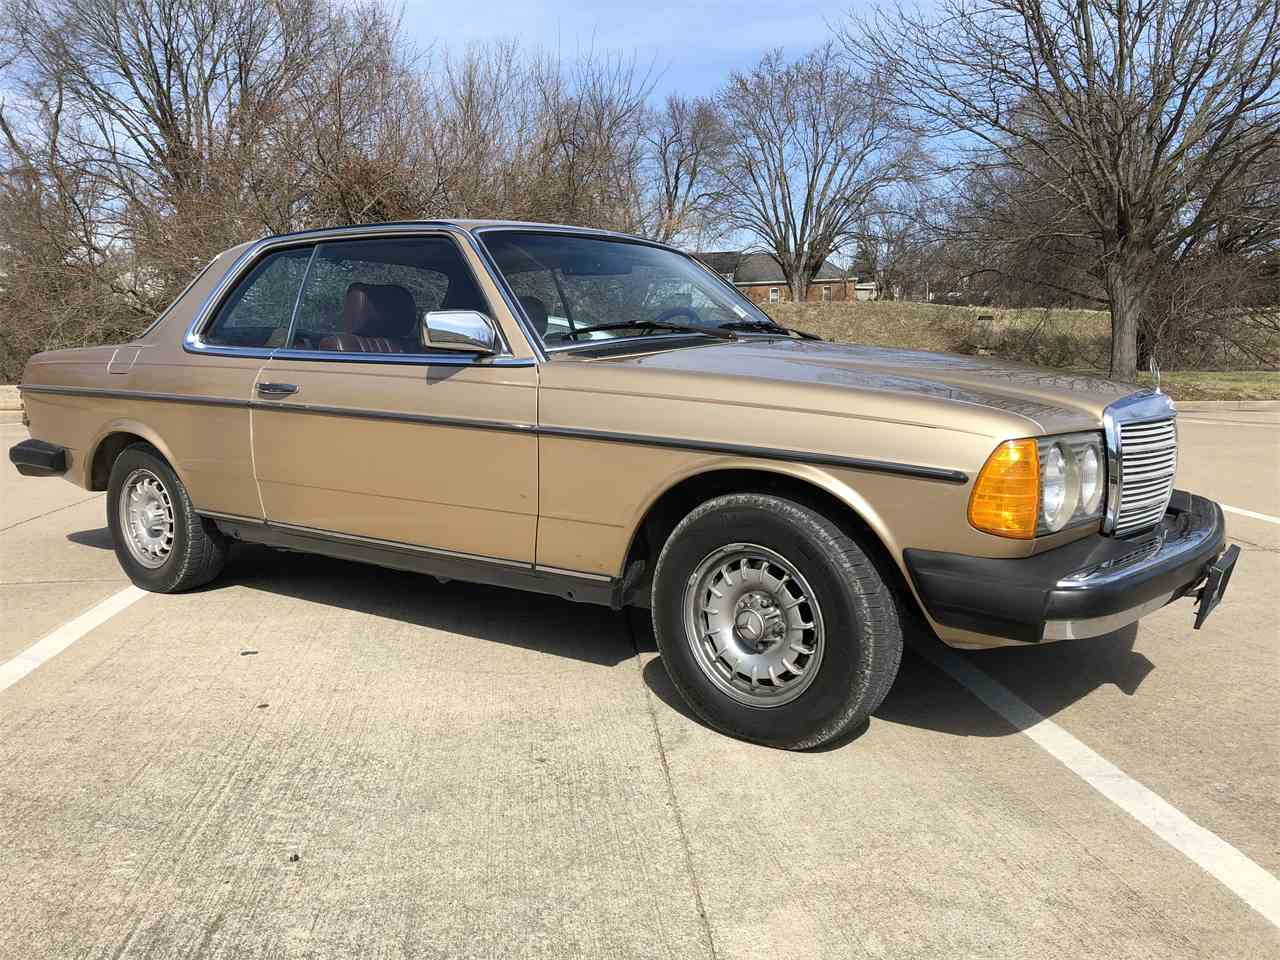 Large Picture of '83 Mercedes-Benz 300CD located in Missouri - $24,500.00 Offered by Payne Motor Co. - MYC4